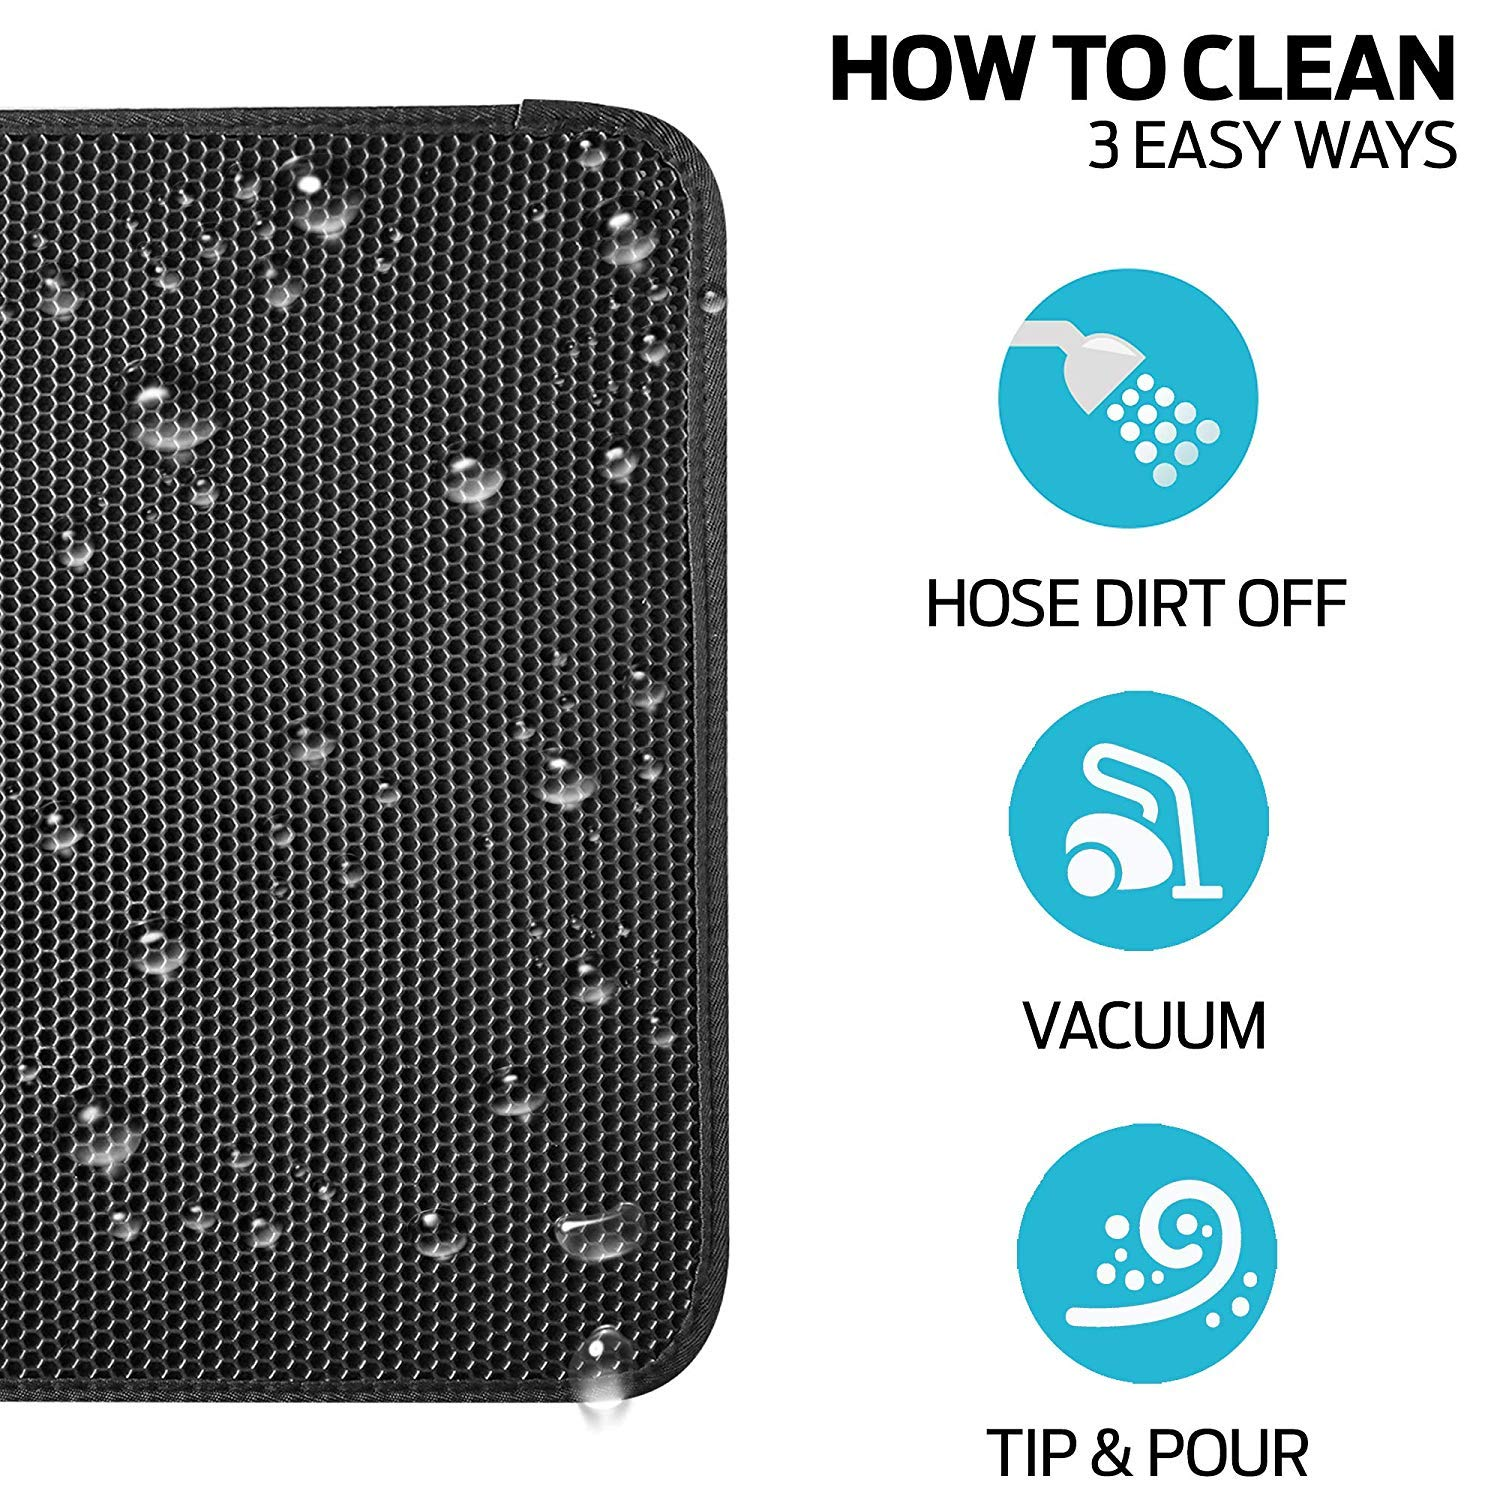 27 x 23(2 Pack), Black Double Layer Waterproof Honeycomb Design Eco-Friendly Light Weight EVA Foam Rubber Non Toxic Trapper Rug Suitable for Litter Boxes//Tray Easy Clean and Durable Large Size 27 X 23 ZuHucpts Cat Litter Mat Trapper